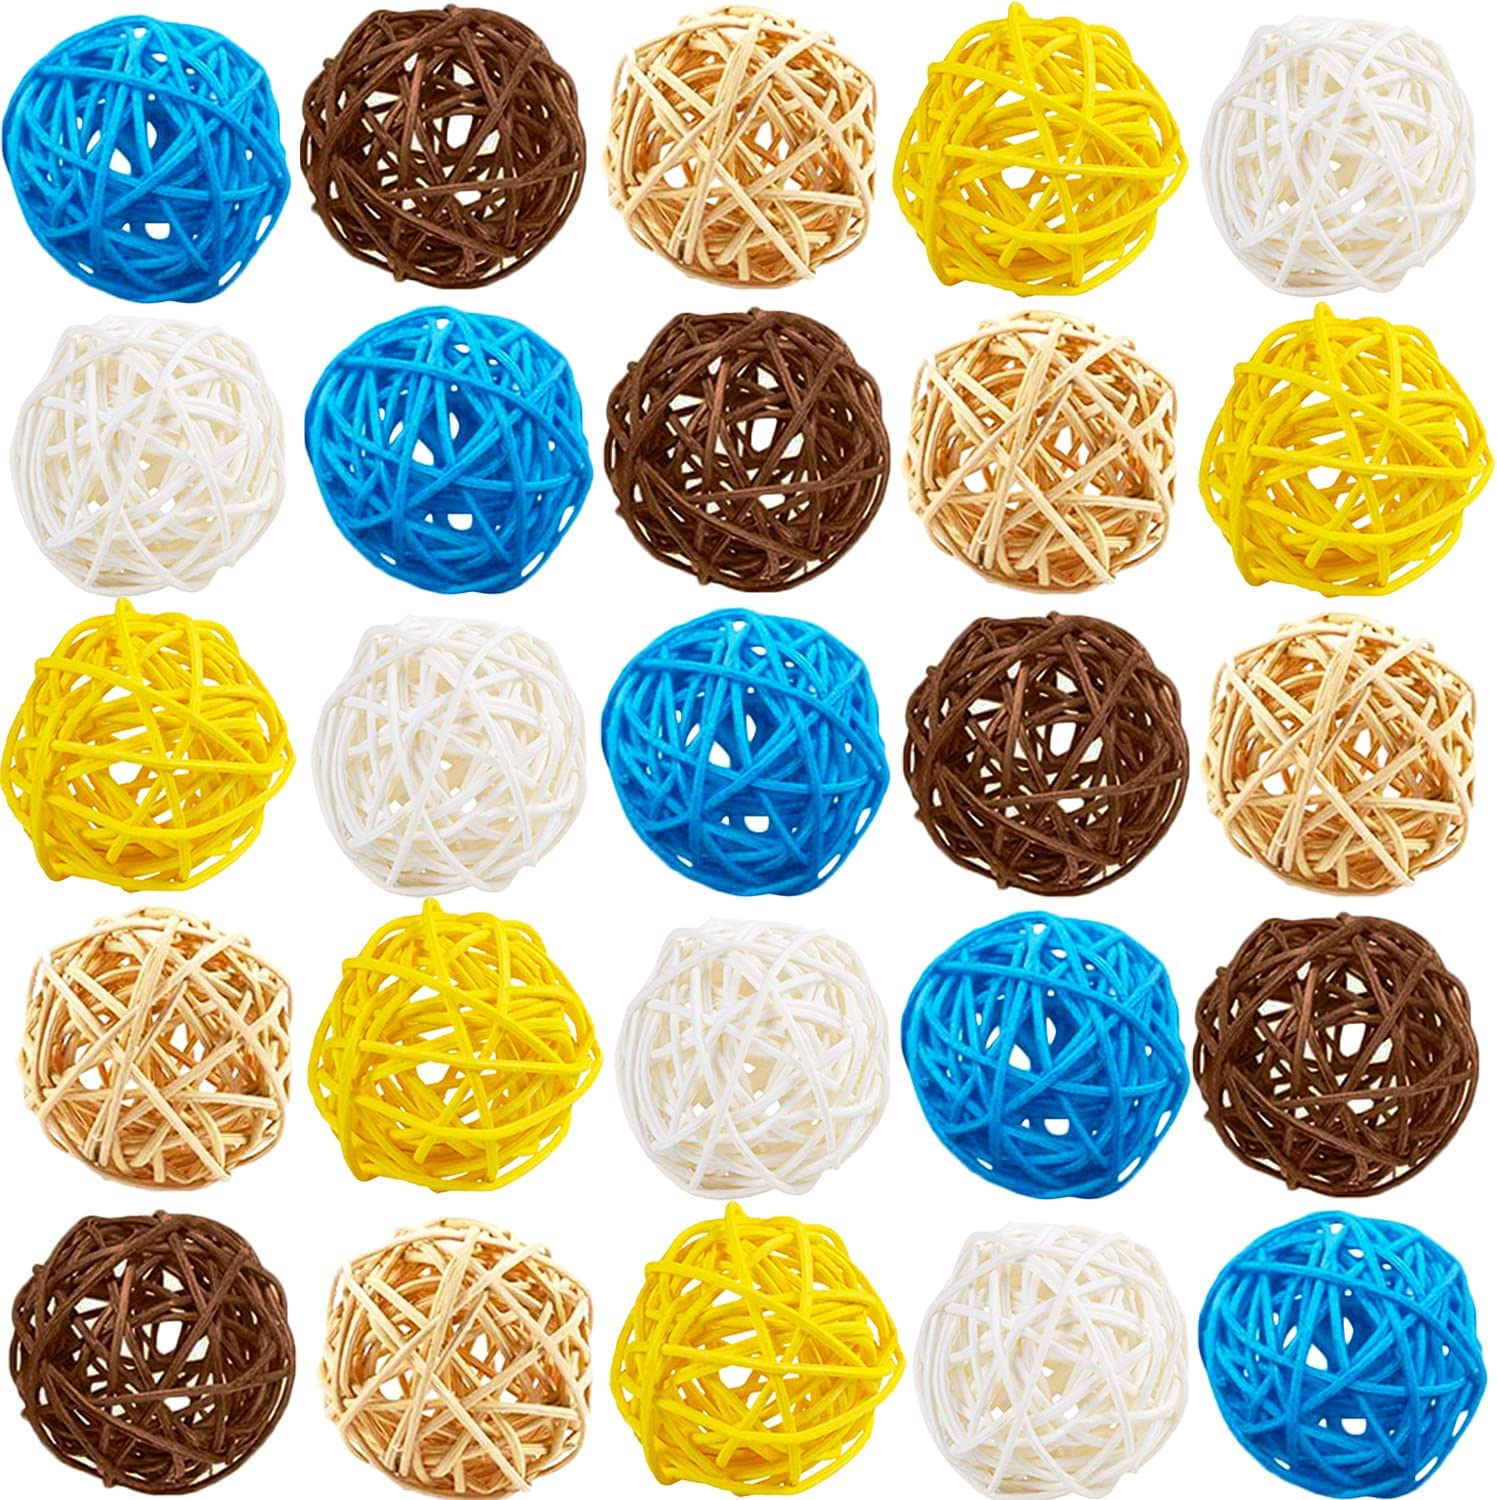 25 Pack Weekly update 2 Inch Wicker Balls Rattan Topics on TV Aromatherapy Decorative Ball